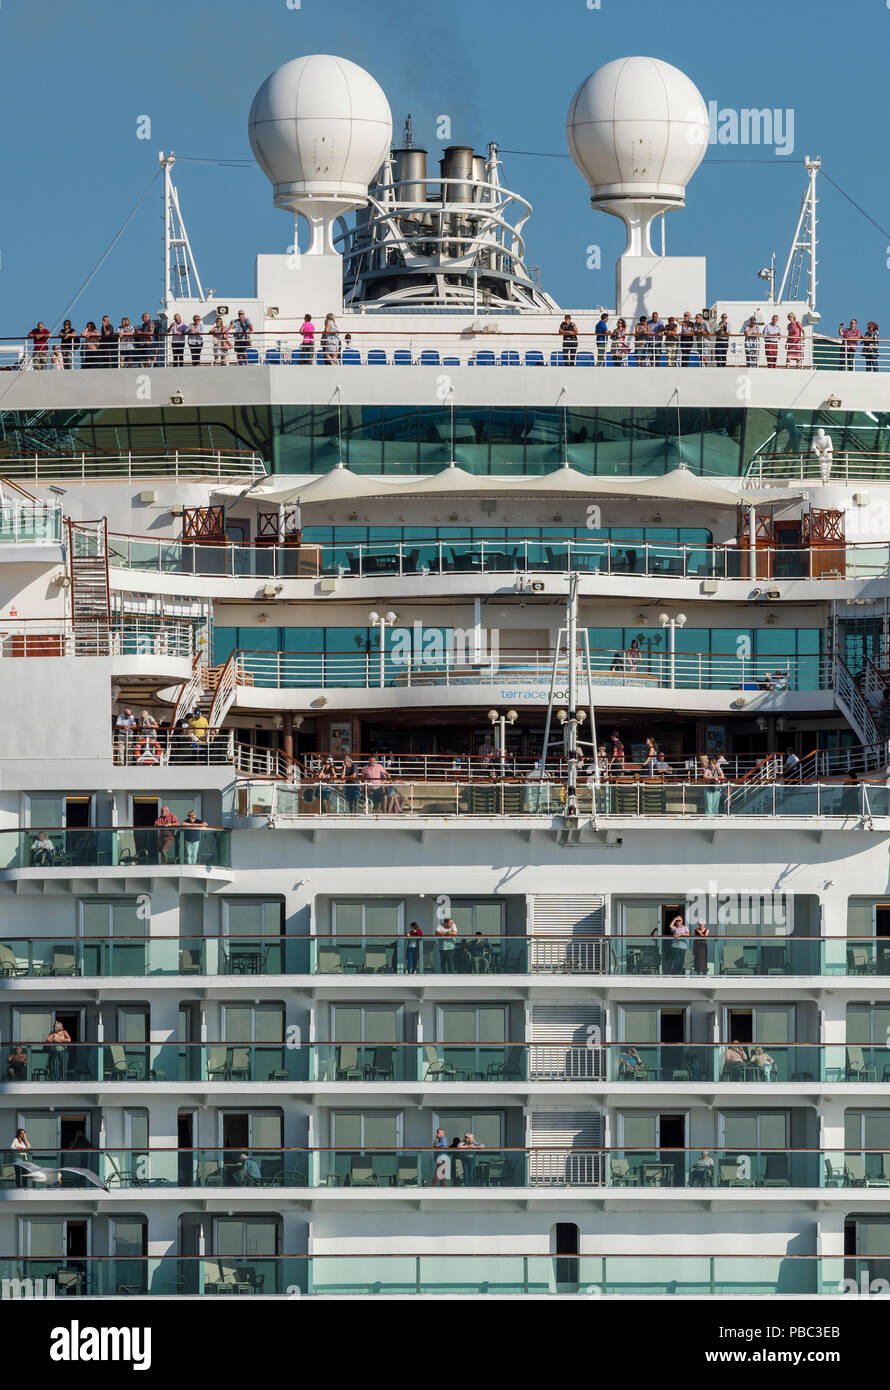 the p and o cruise liner azura leaving Southampton with passengers on deck and on their balconies. Stock Photo